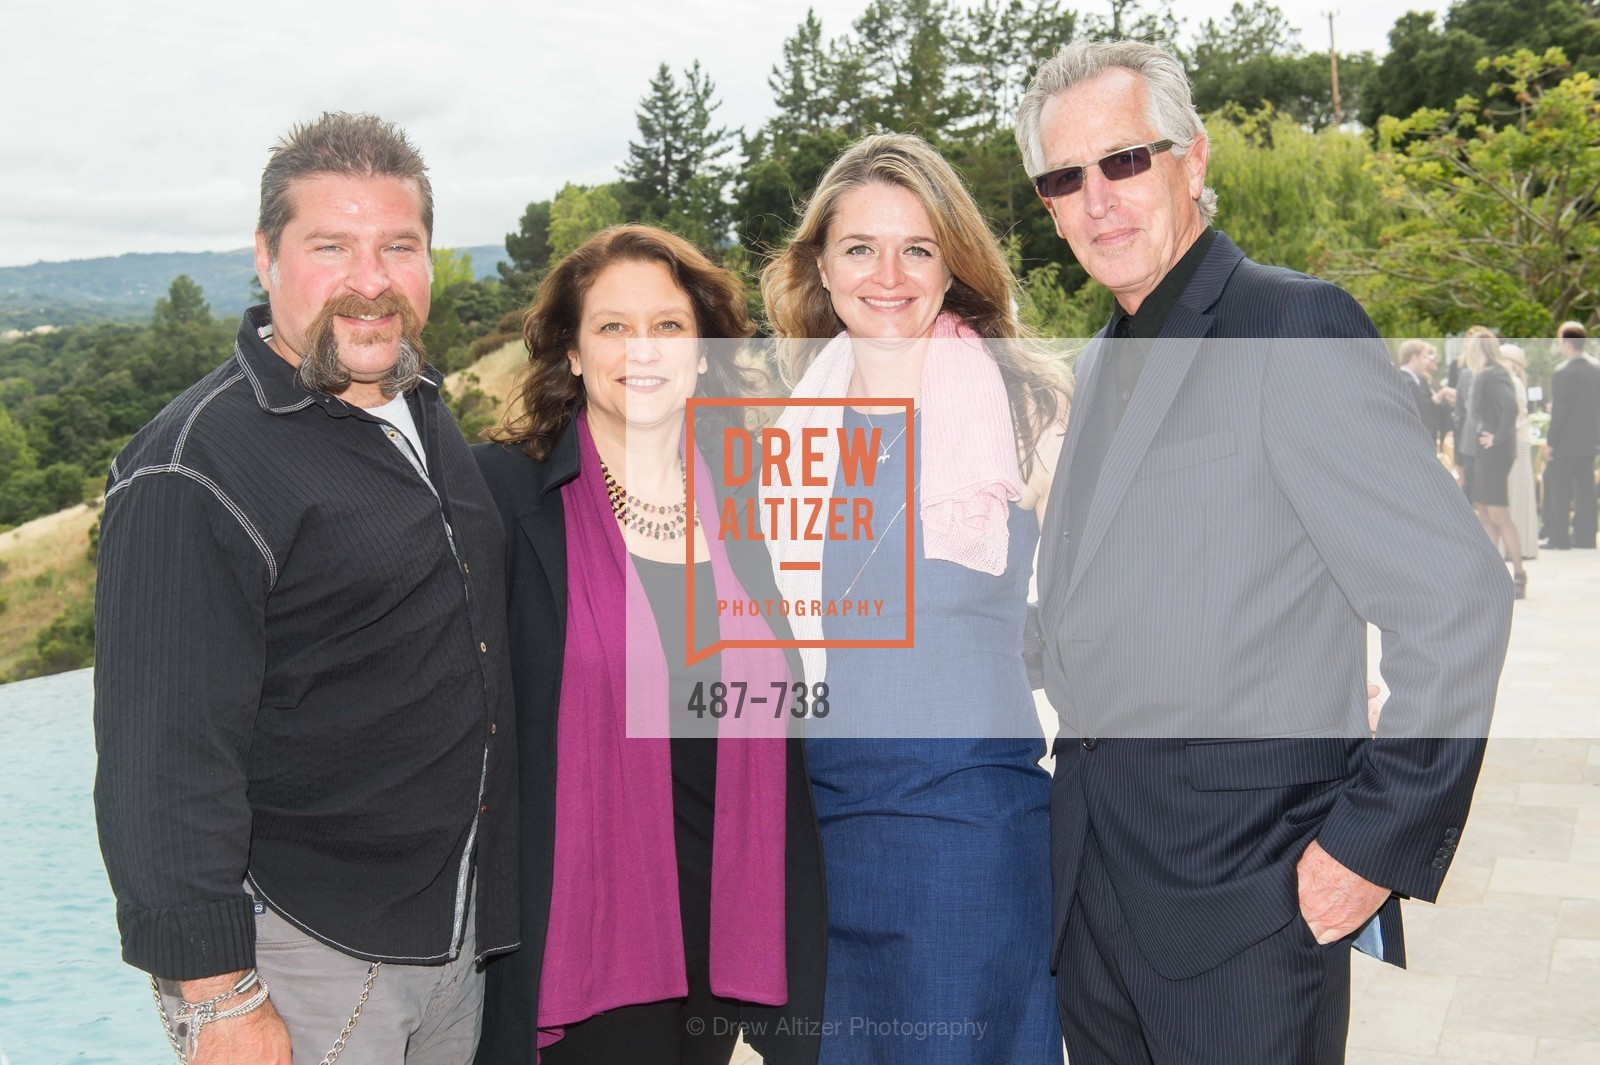 Andy Hewett, Rachel Berg, Sinead Devine, Patrick Tinney, LymeAid 2015, US, May 18th, 2015,Drew Altizer, Drew Altizer Photography, full-service agency, private events, San Francisco photographer, photographer california